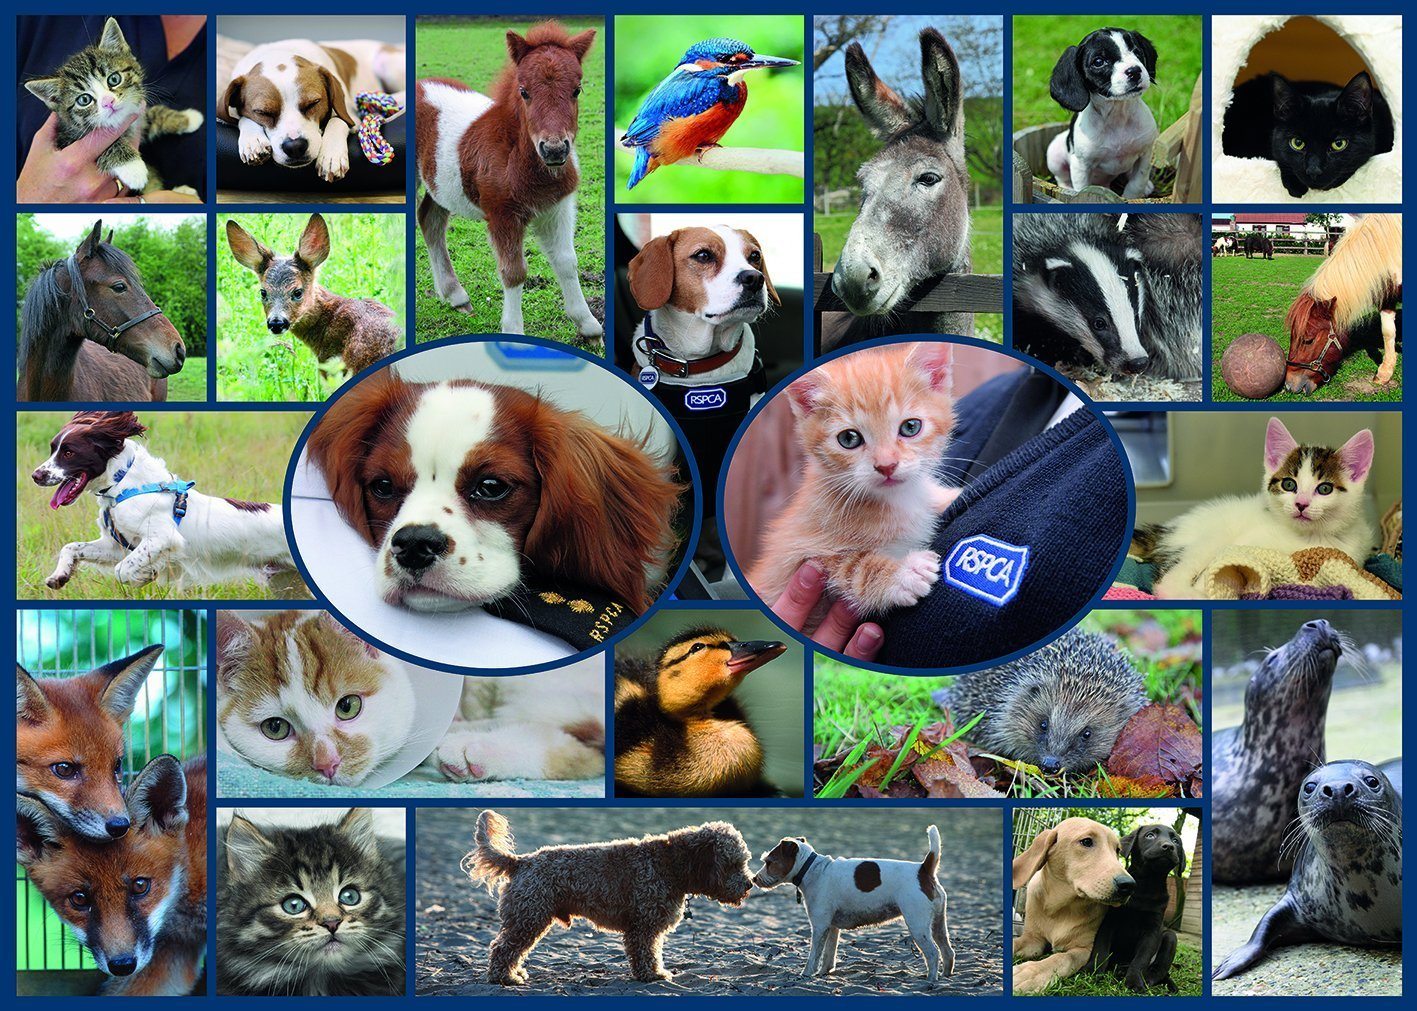 gibsons-all-creatures-great-small-1000-teile-puzzle-gibsons-g7086, 13.46 EUR @ puzzle-de